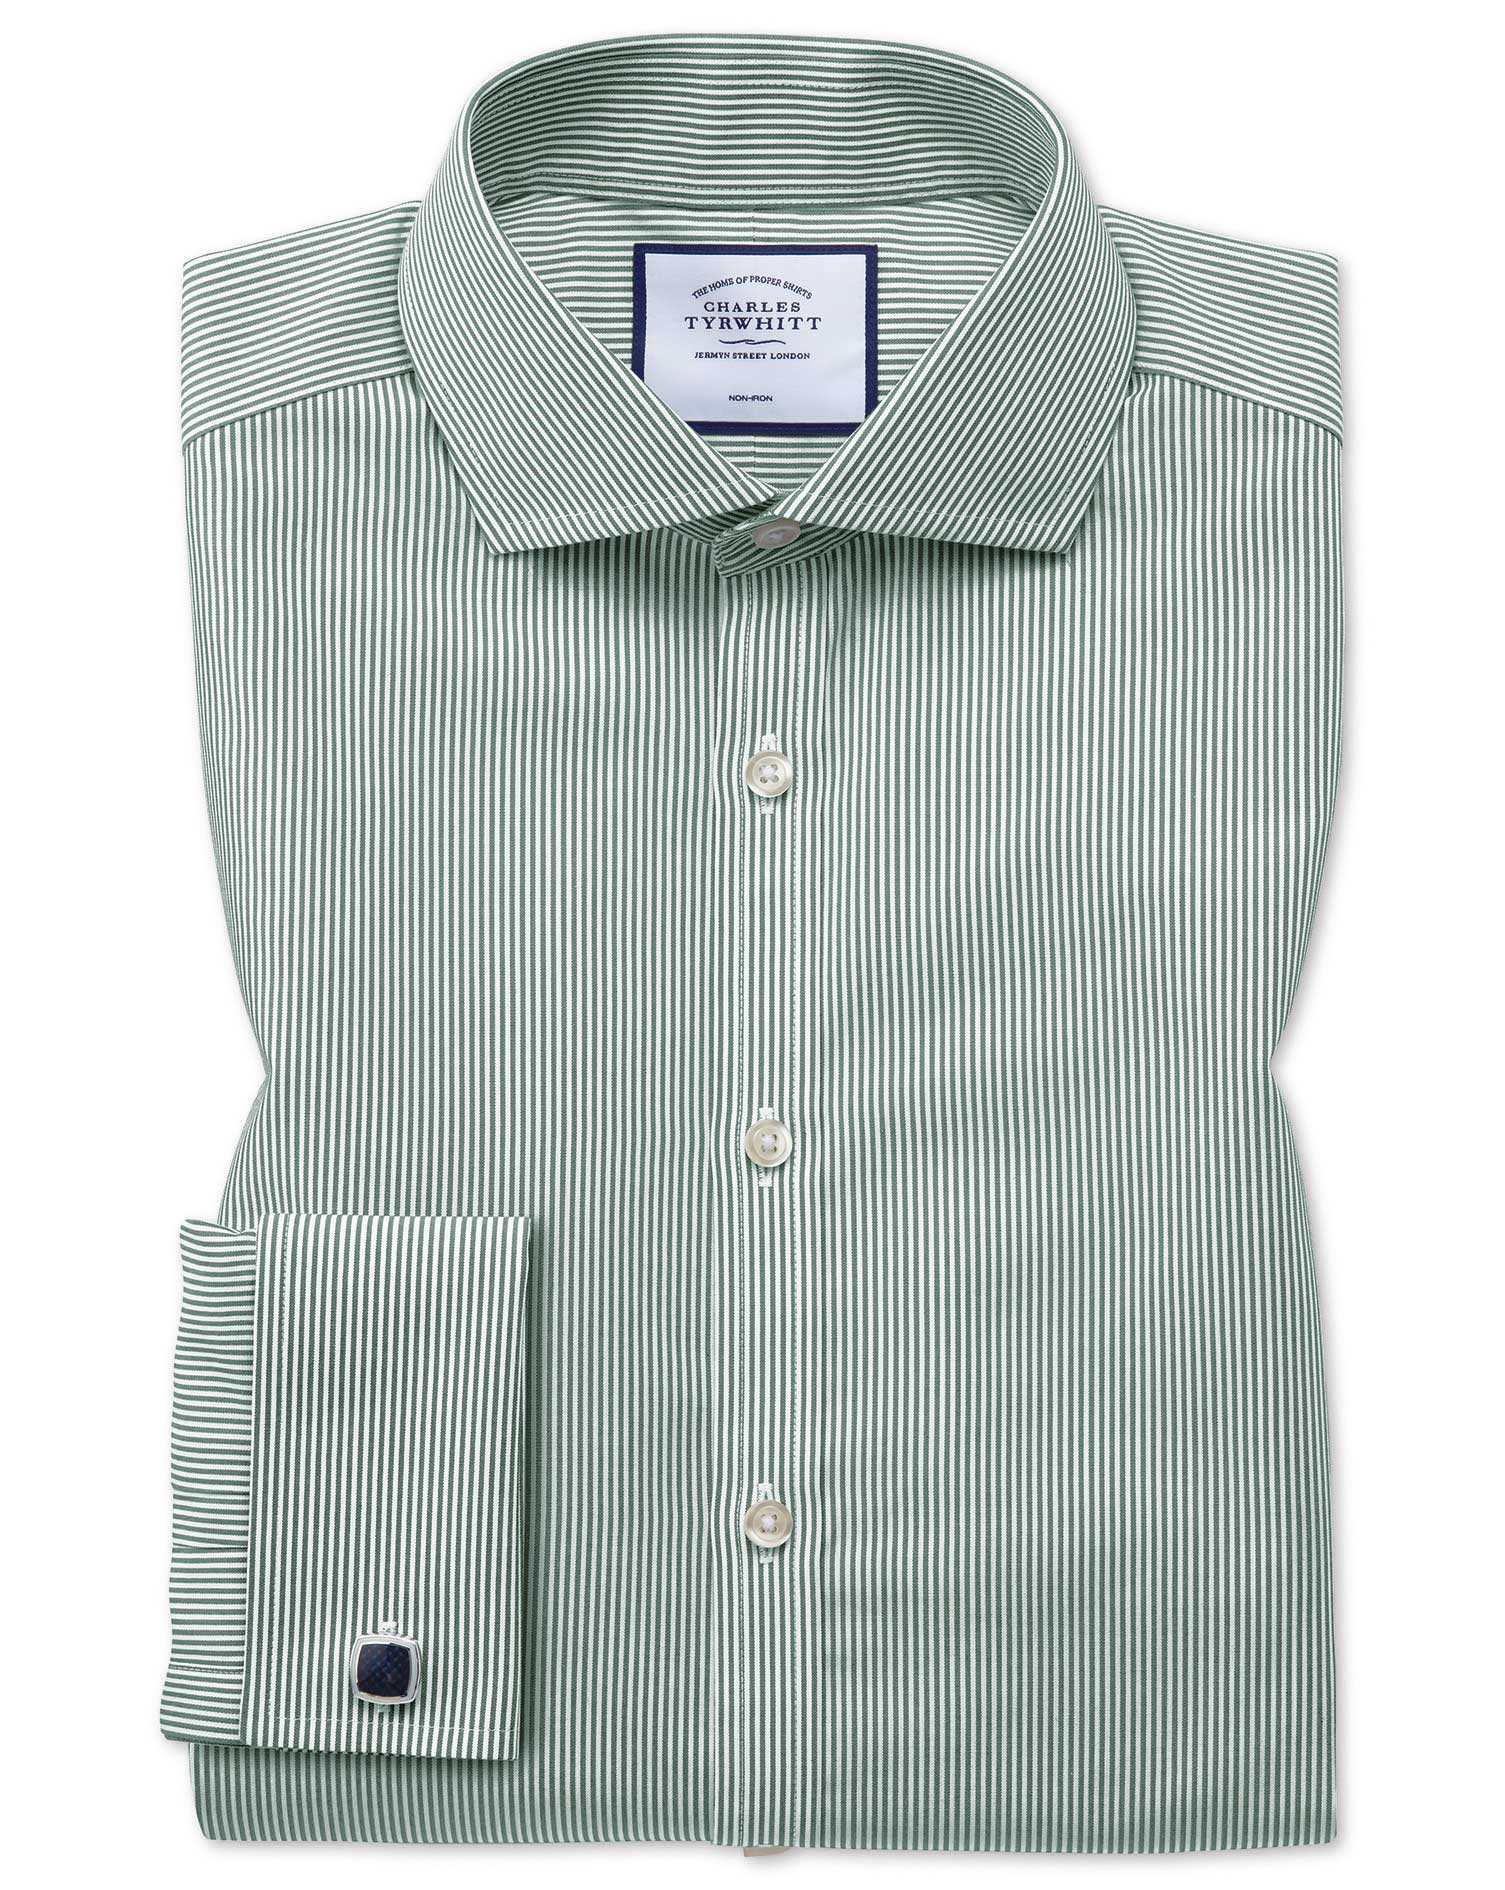 Extra Slim Fit Non-Iron Cutaway Collar Olive Bengal Stripe Cotton Formal Shirt Single Cuff Size 15/3